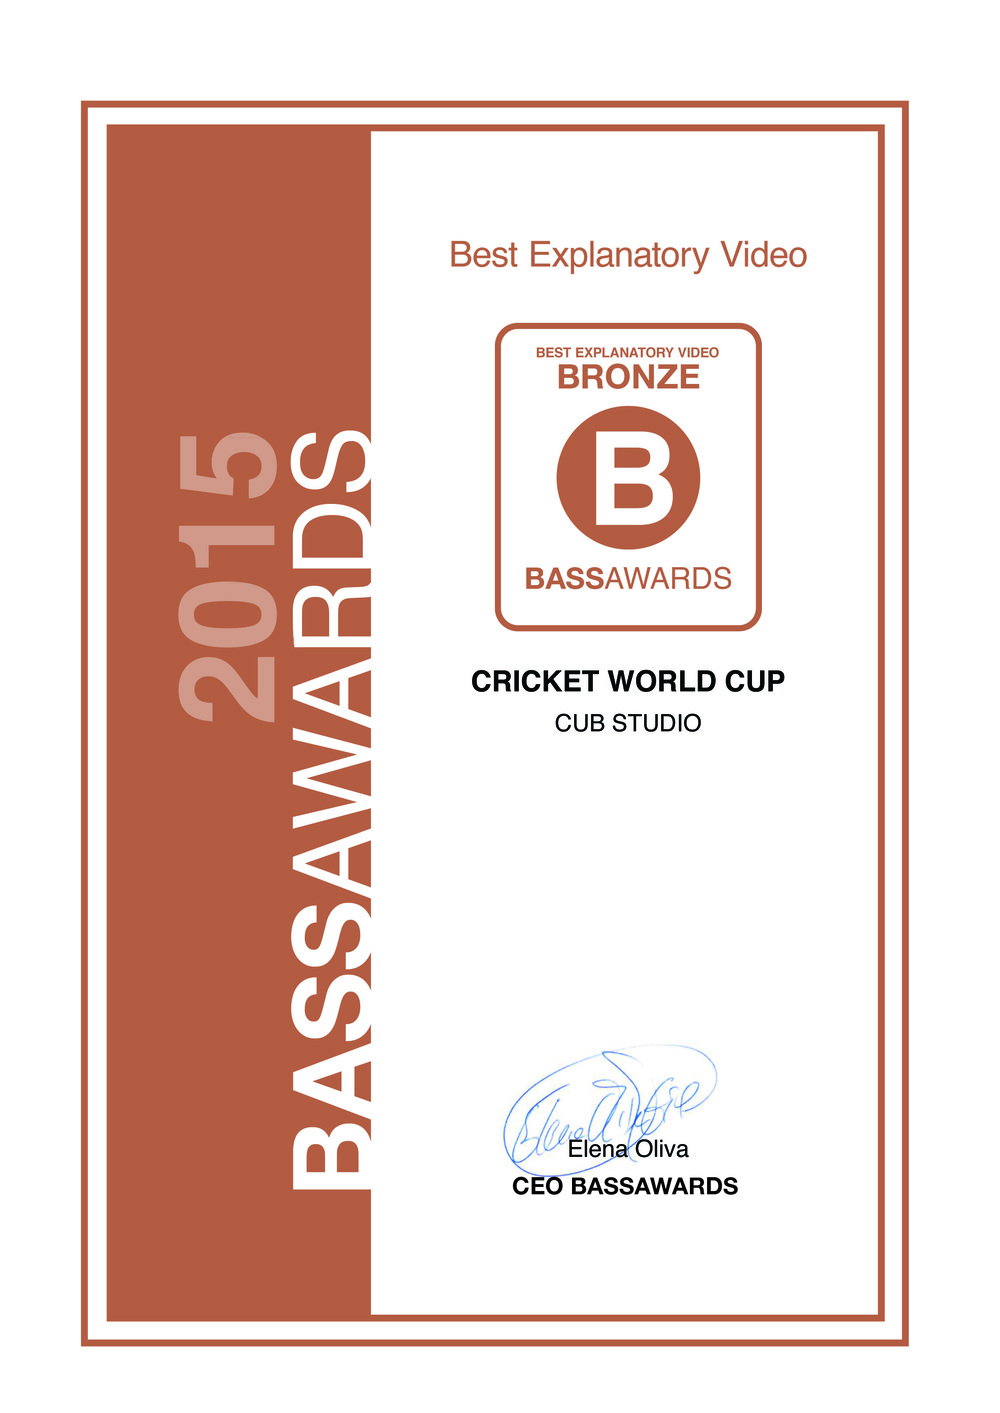 BASS-AWARD-EXPLANATORY-VIDEO.jpg